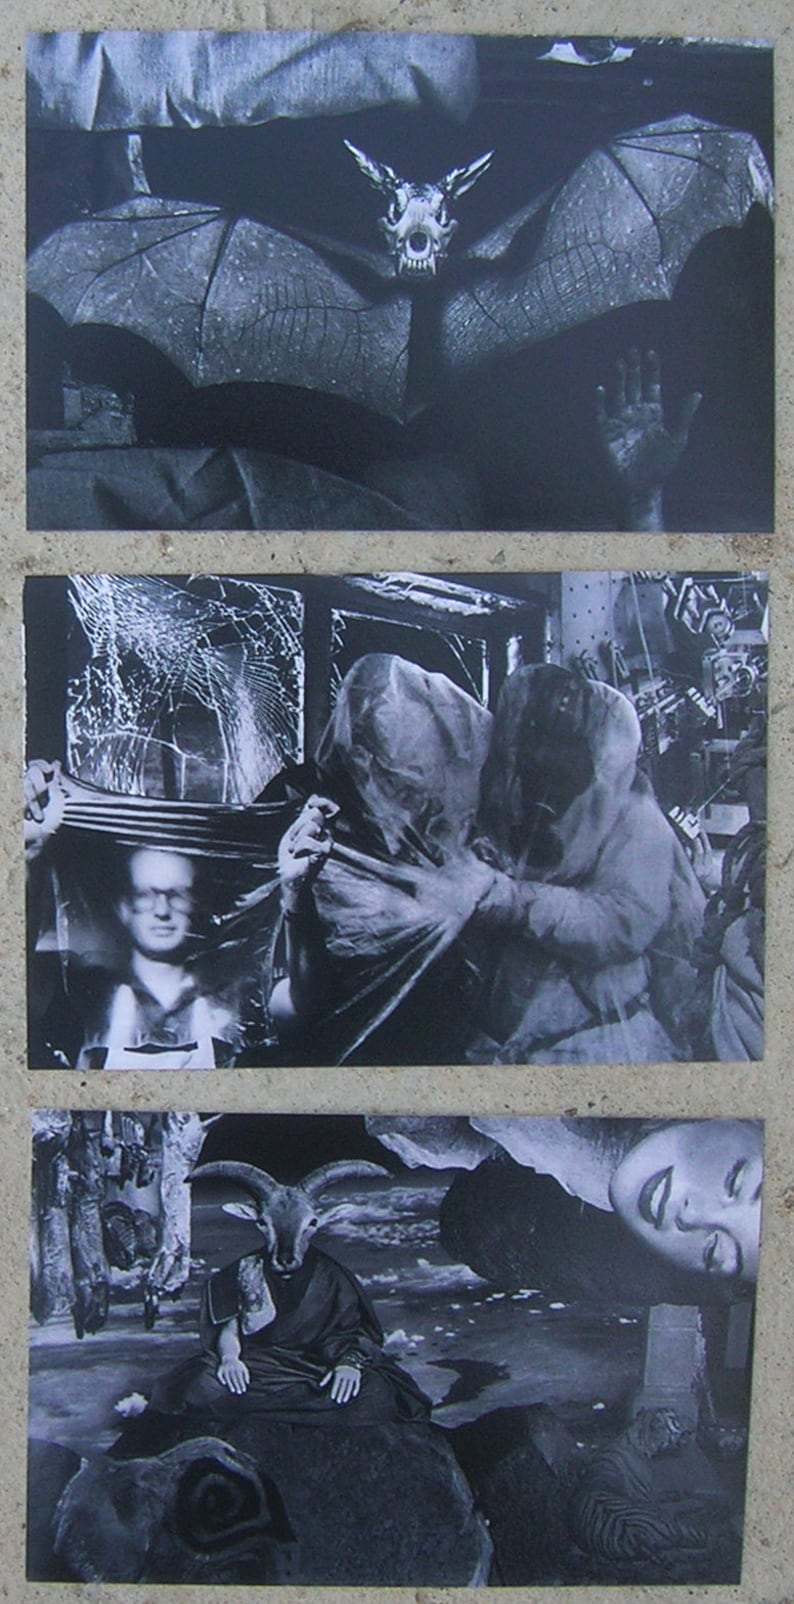 Surrealistic Dada Collage Art - 4 X 6 inch postcards - 5 photo card set -  Esoteric Collage Art by Danger